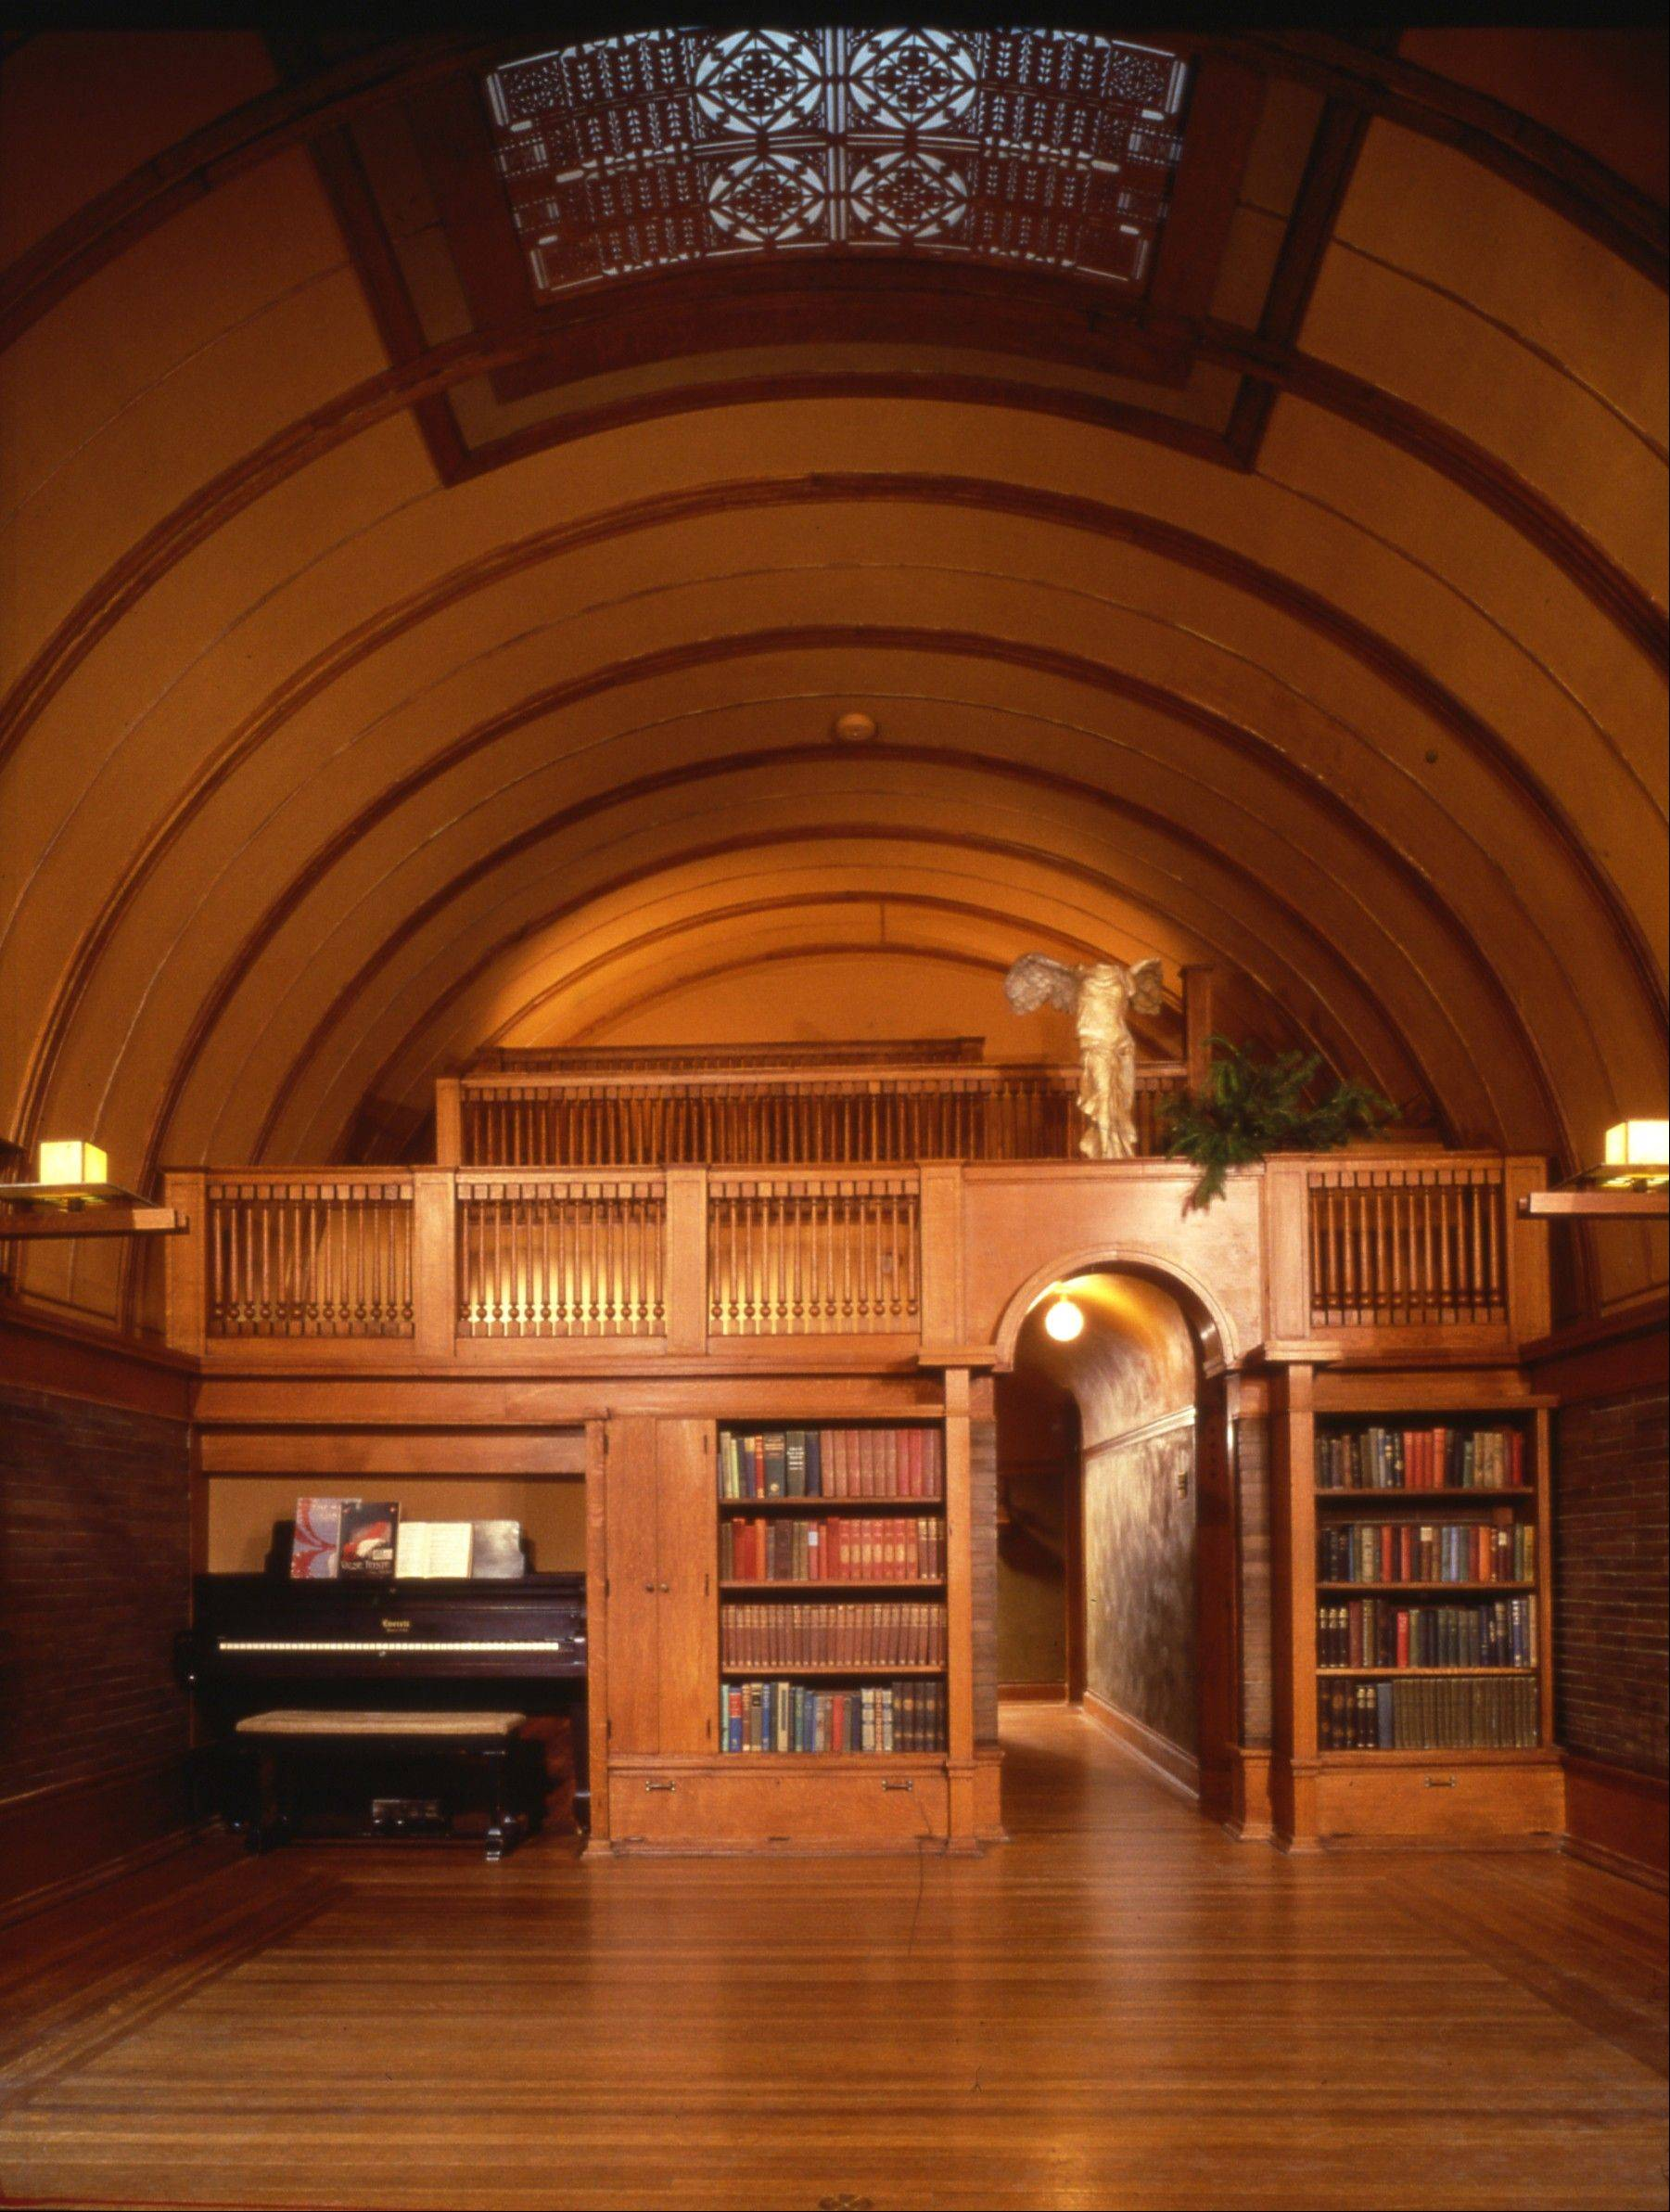 The playroom at the famous architect's home and studio in Oak Park draws some 80,000 visitors a year. Oak Park is home to 29 Wright-designed structures, the largest collection of Wright sites in any one place in the world.